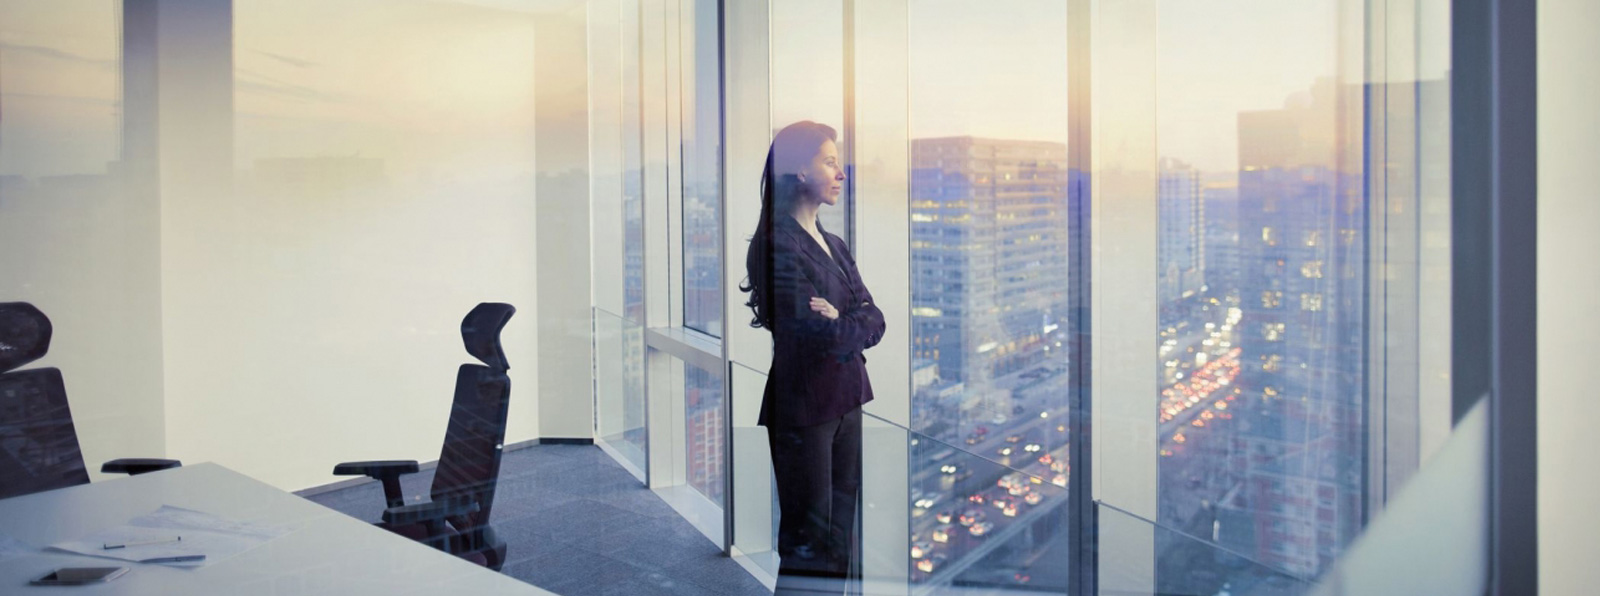 a woman in an office staring at the city on the outside of a building with glass walls